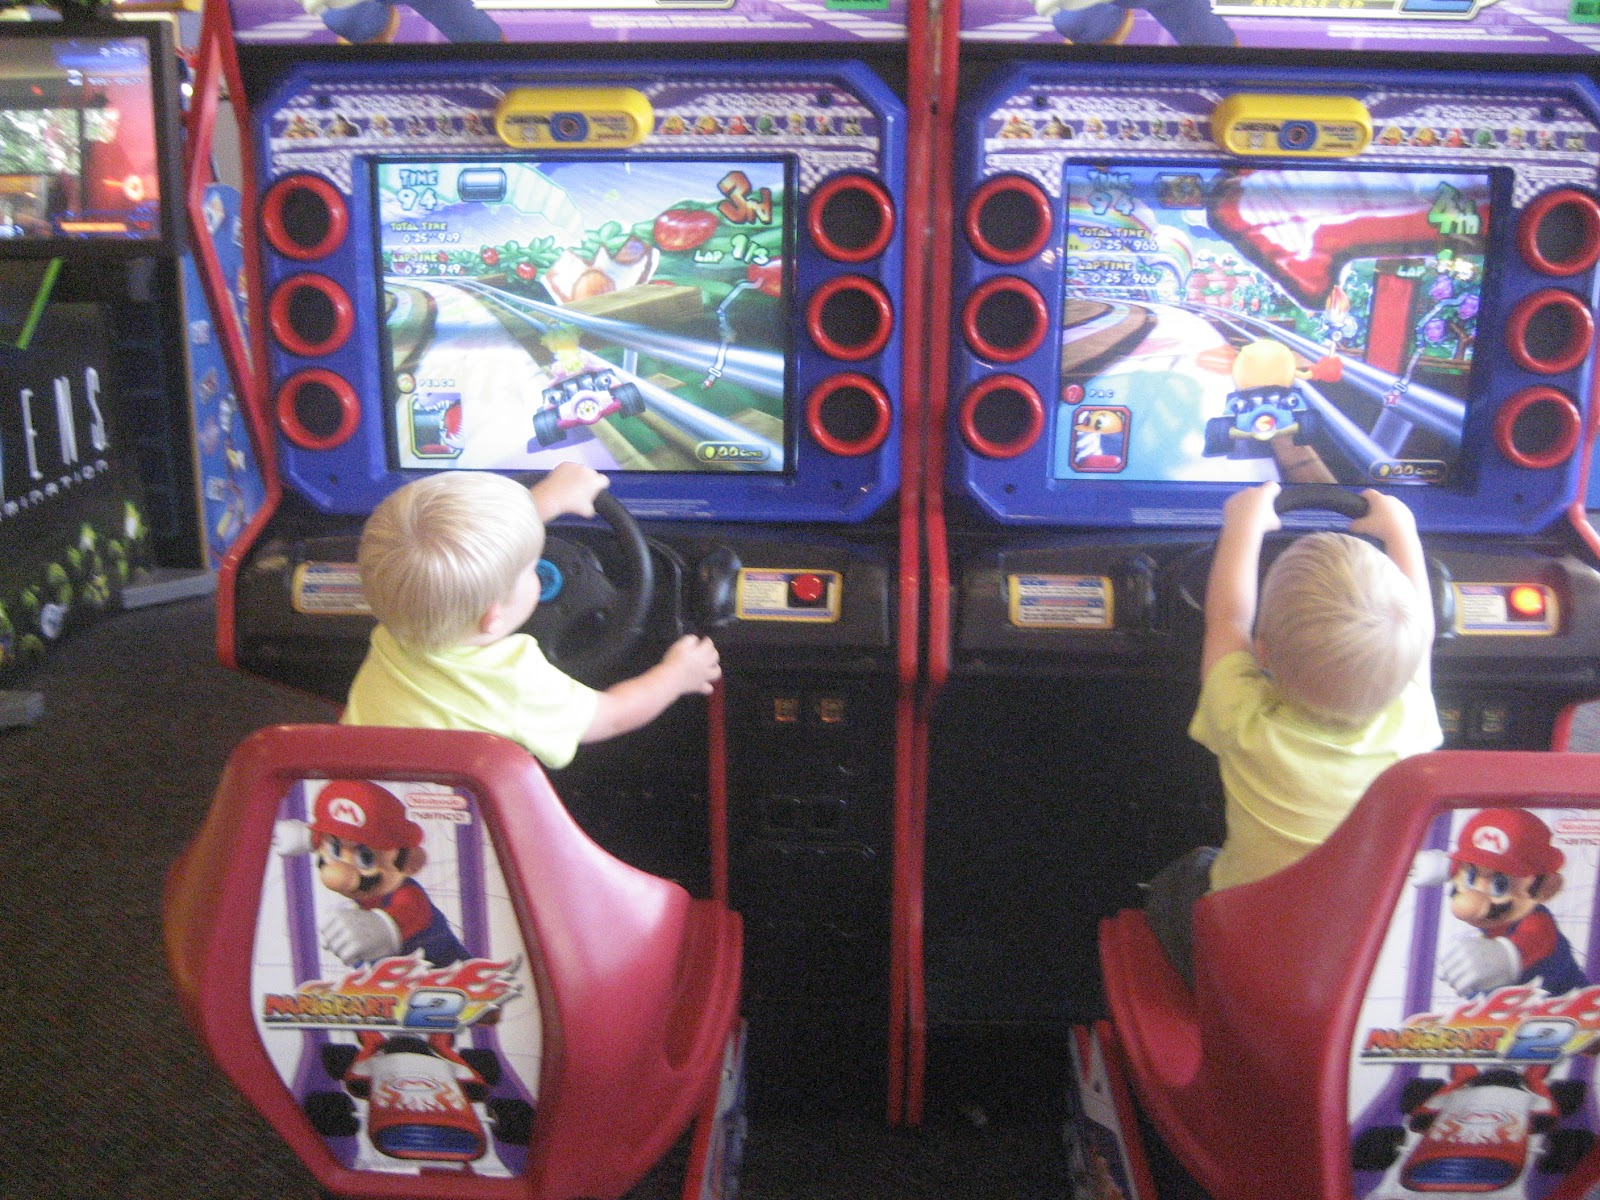 Chuck E Cheese Games 2014 The boys loved the car gamesChuck E Cheese Games 2014